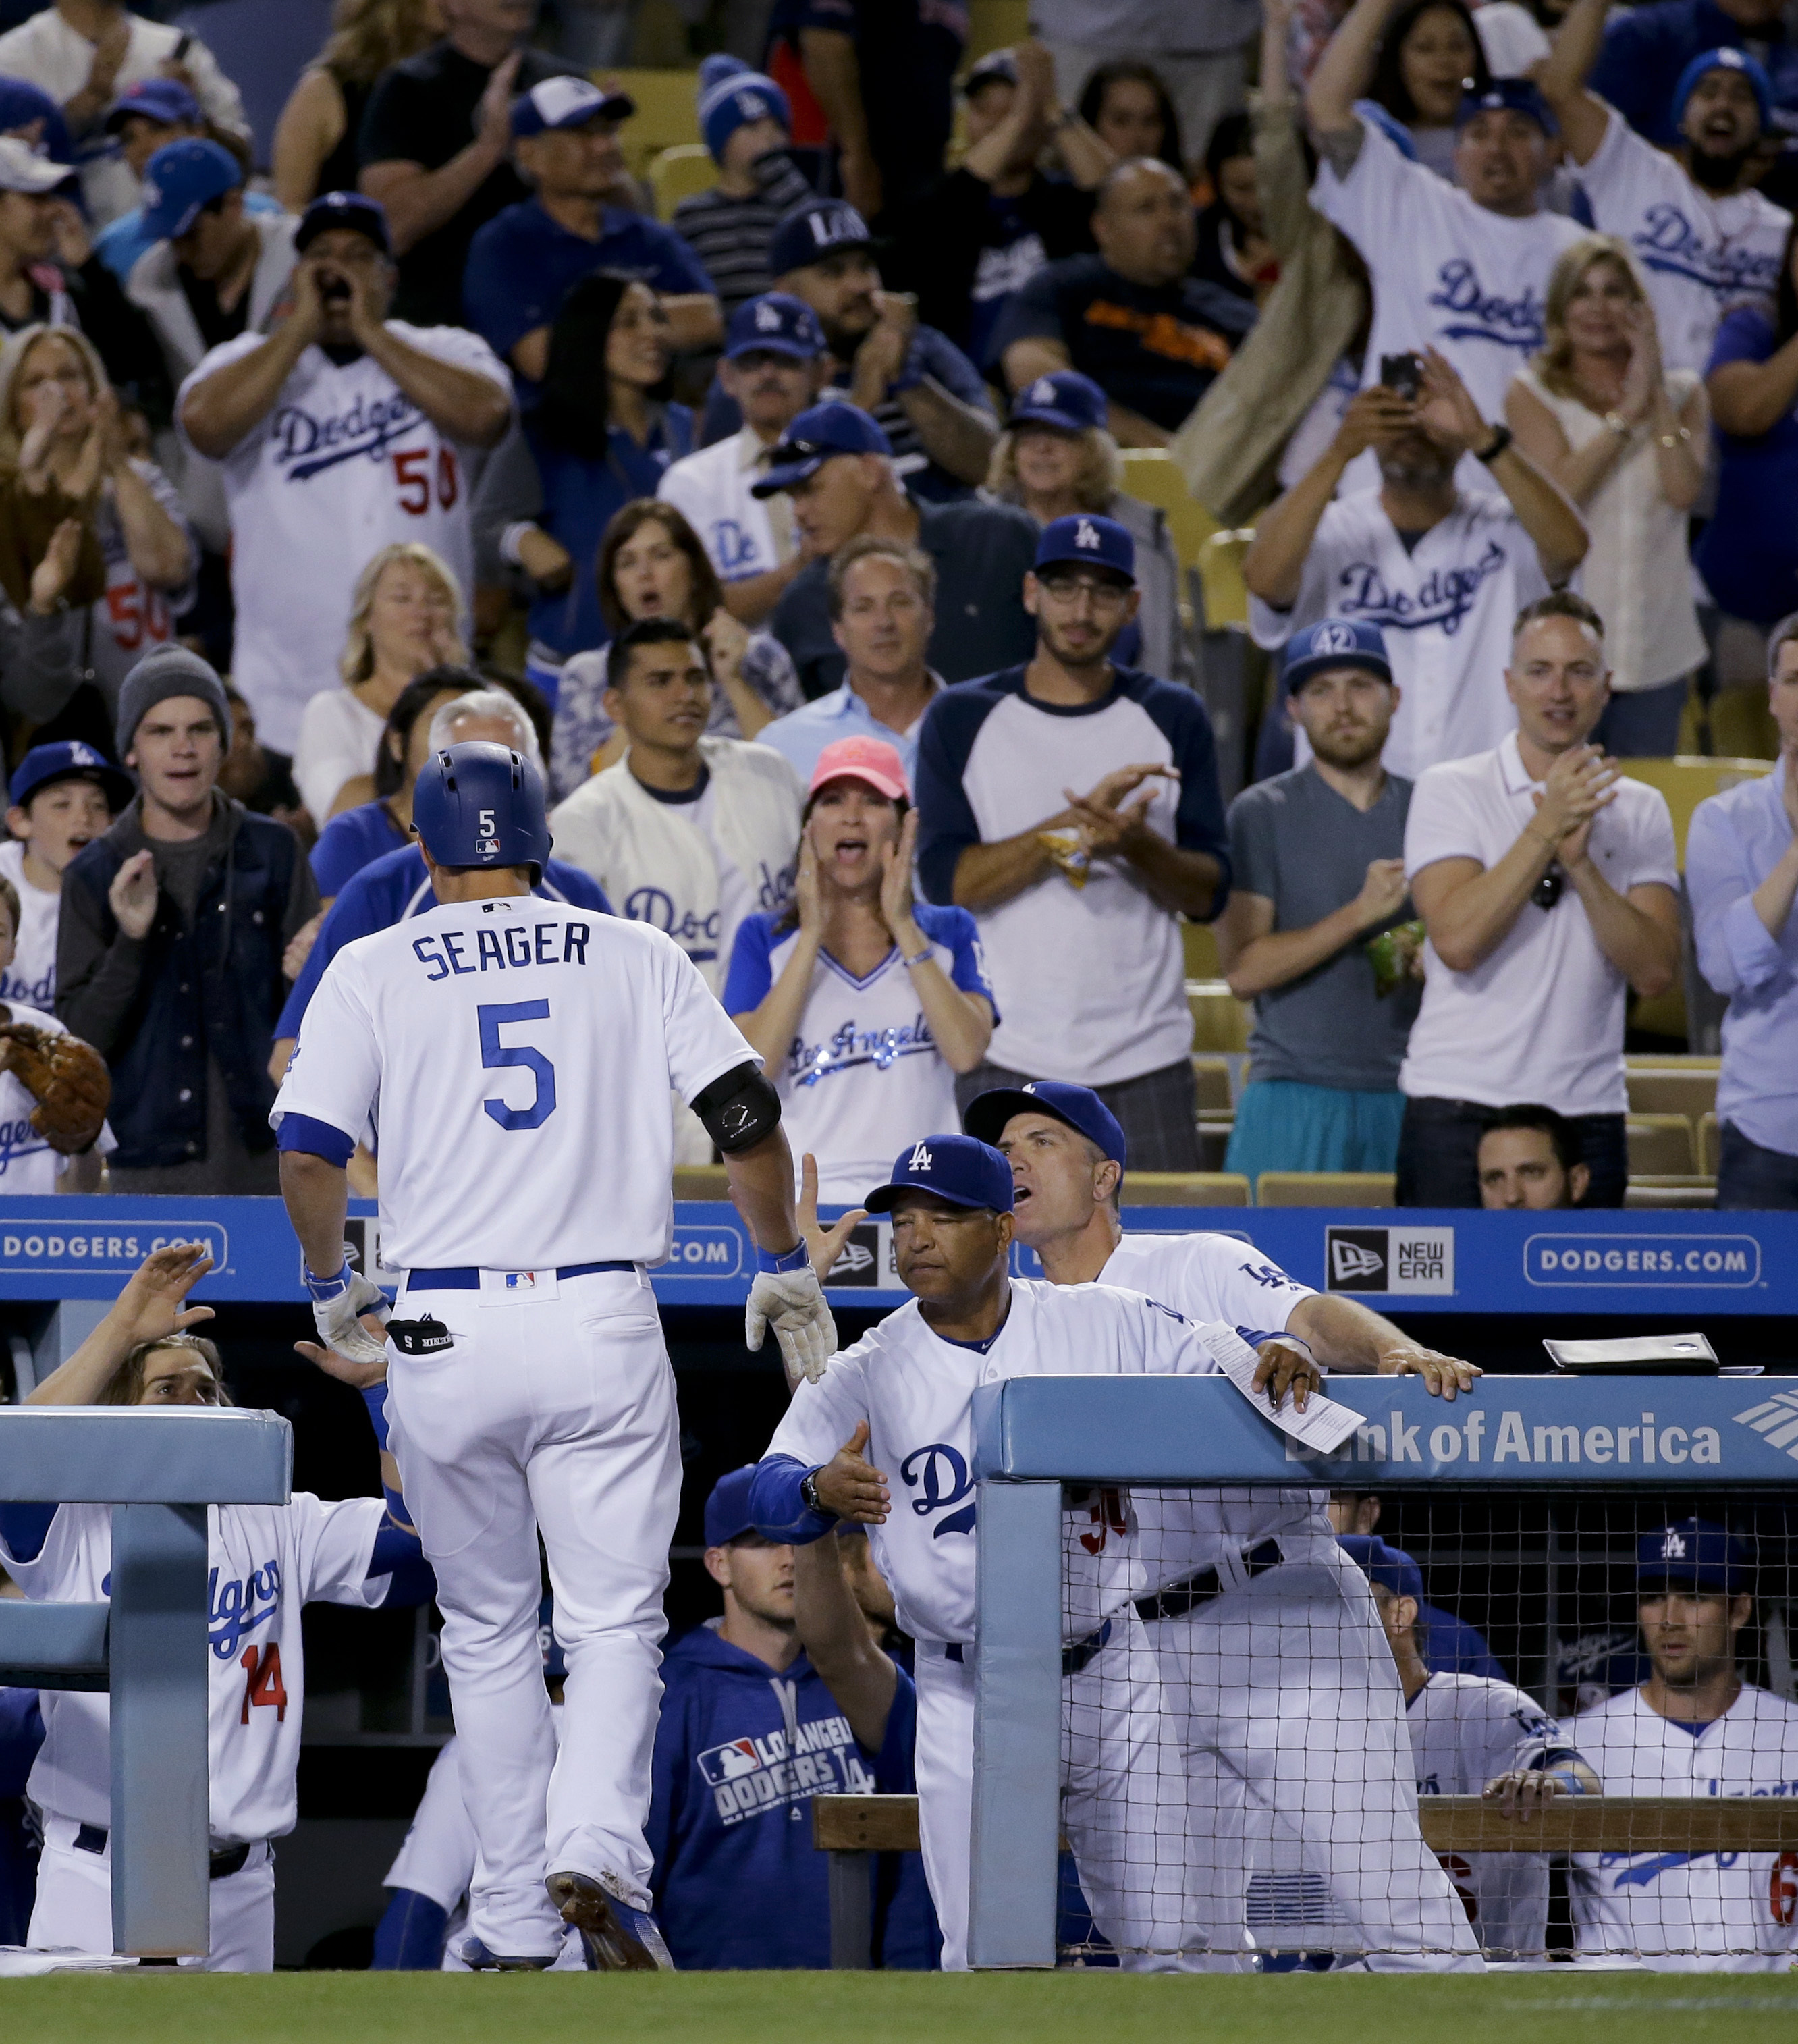 Los Angeles Dodgers' Corey Seager, celebrates after a two-run home run against the San Francisco Giants during the eighth inning of a baseball game in Los Angeles, Saturday, April 16, 2016. (AP Photo/Chris Carlson)